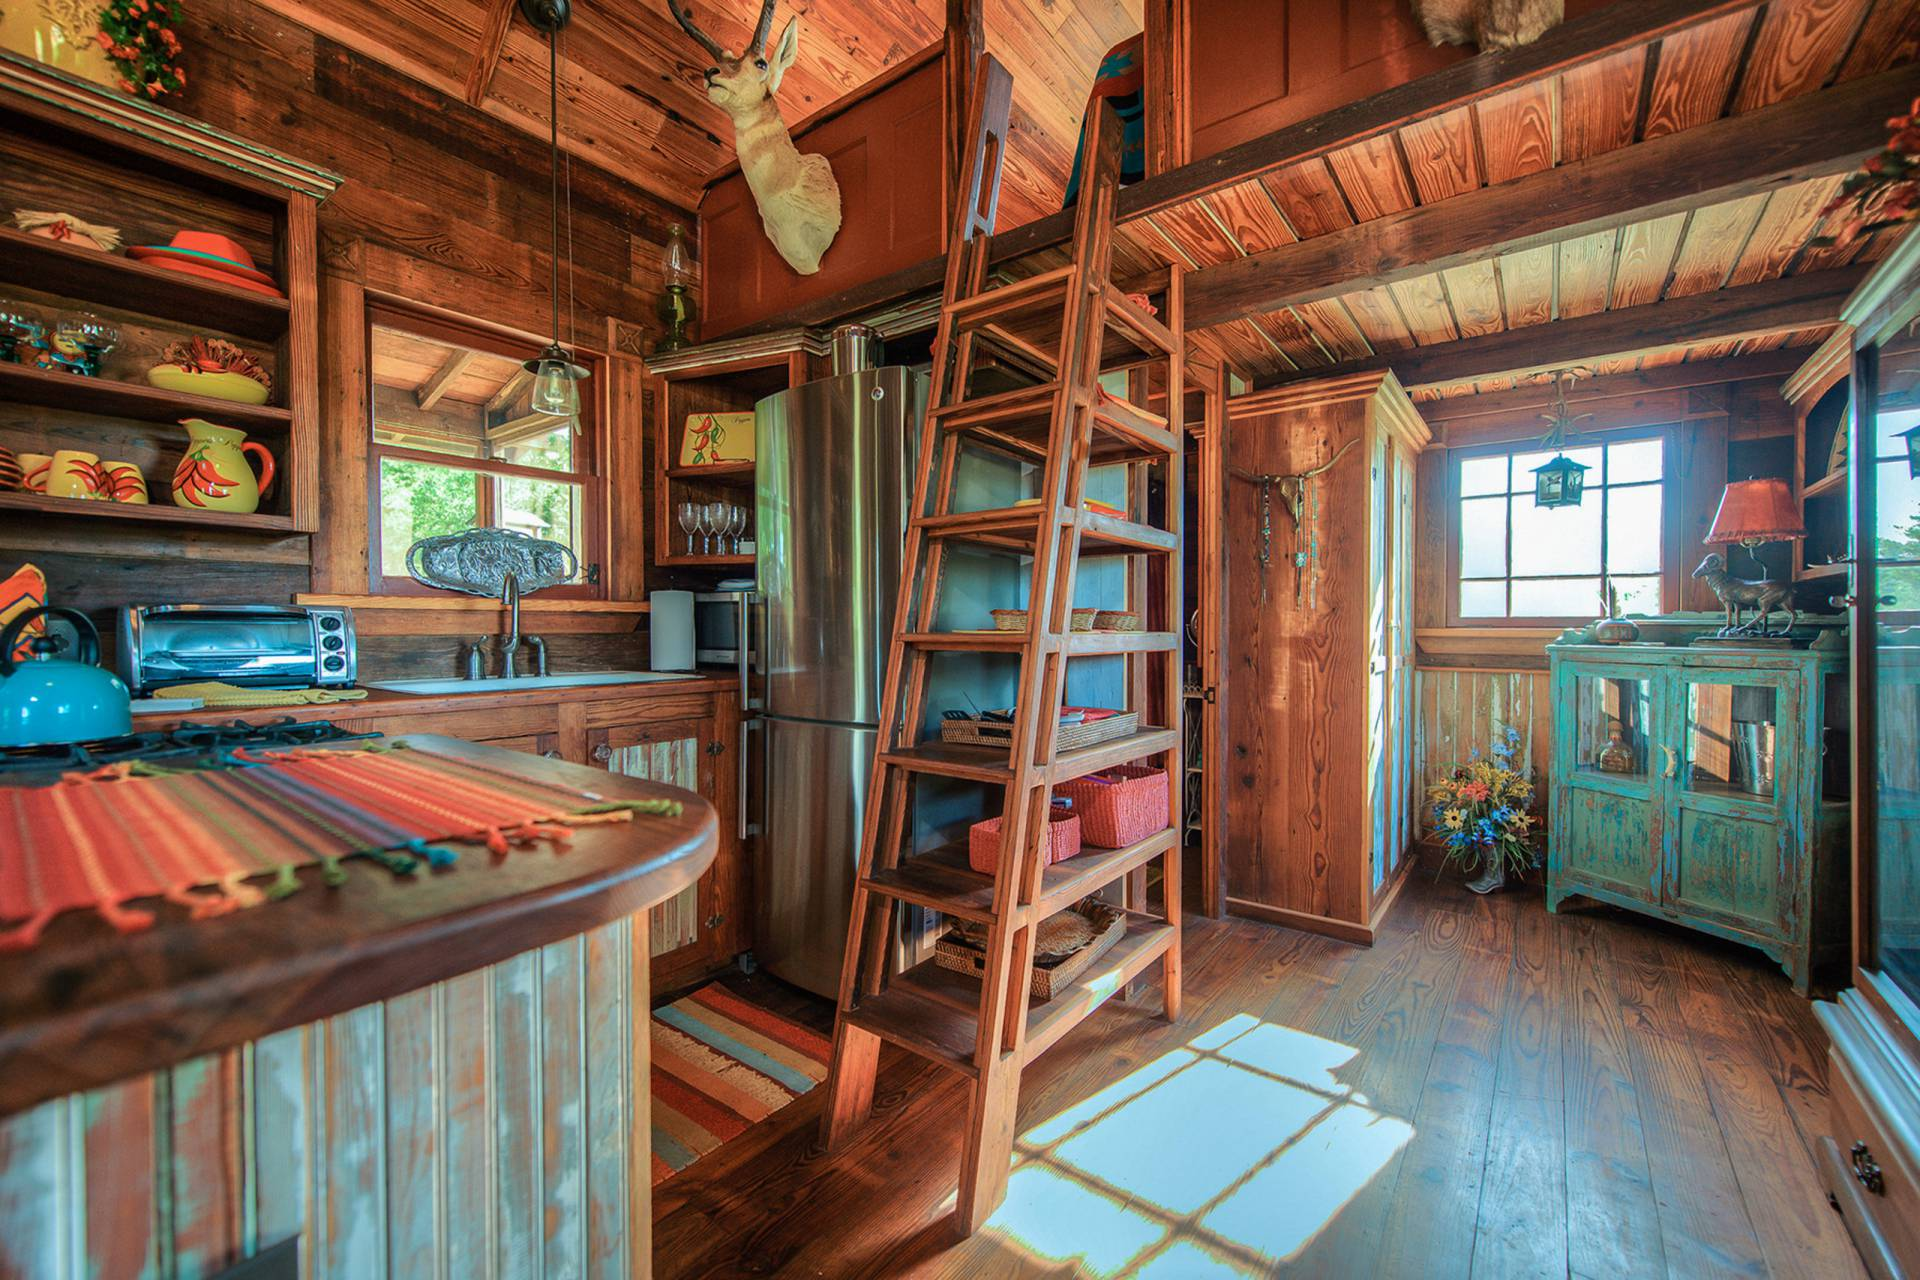 The Rustic Cowboy Cabin Was Built From Salvaged Materials 12x28